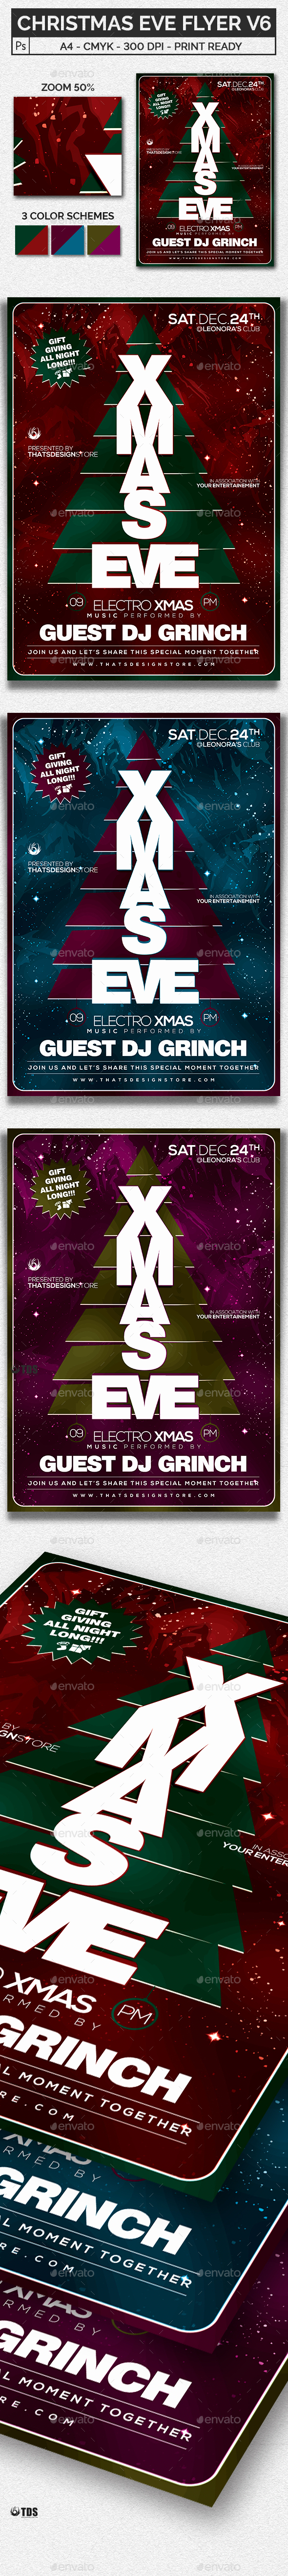 Christmas Eve Flyer Template V6 - Holidays Events